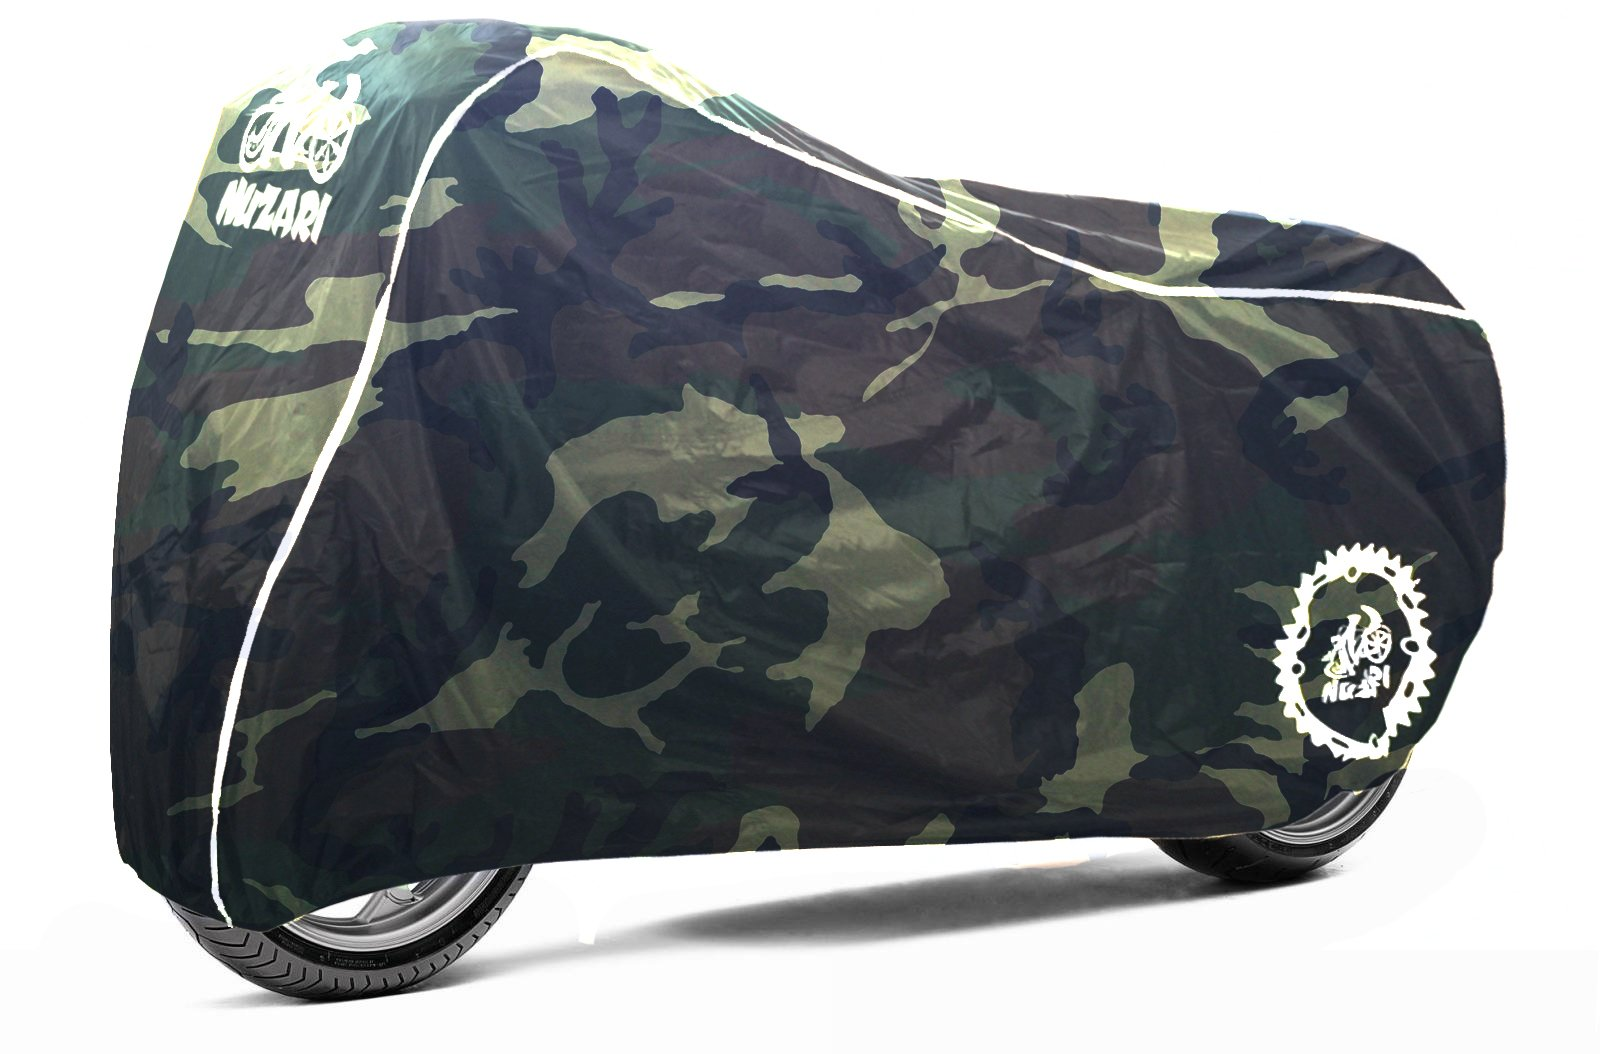 Premium Weather Resistant Covers Waterproof Polyester w/Soft Screen & Heat Resistant Shields.Motorcycle Cover has Lockable fabric, Durable & Long Lasting.Sportbikes & Cruisers (XX-Large, Camouflage) by Nuzari (Image #2)